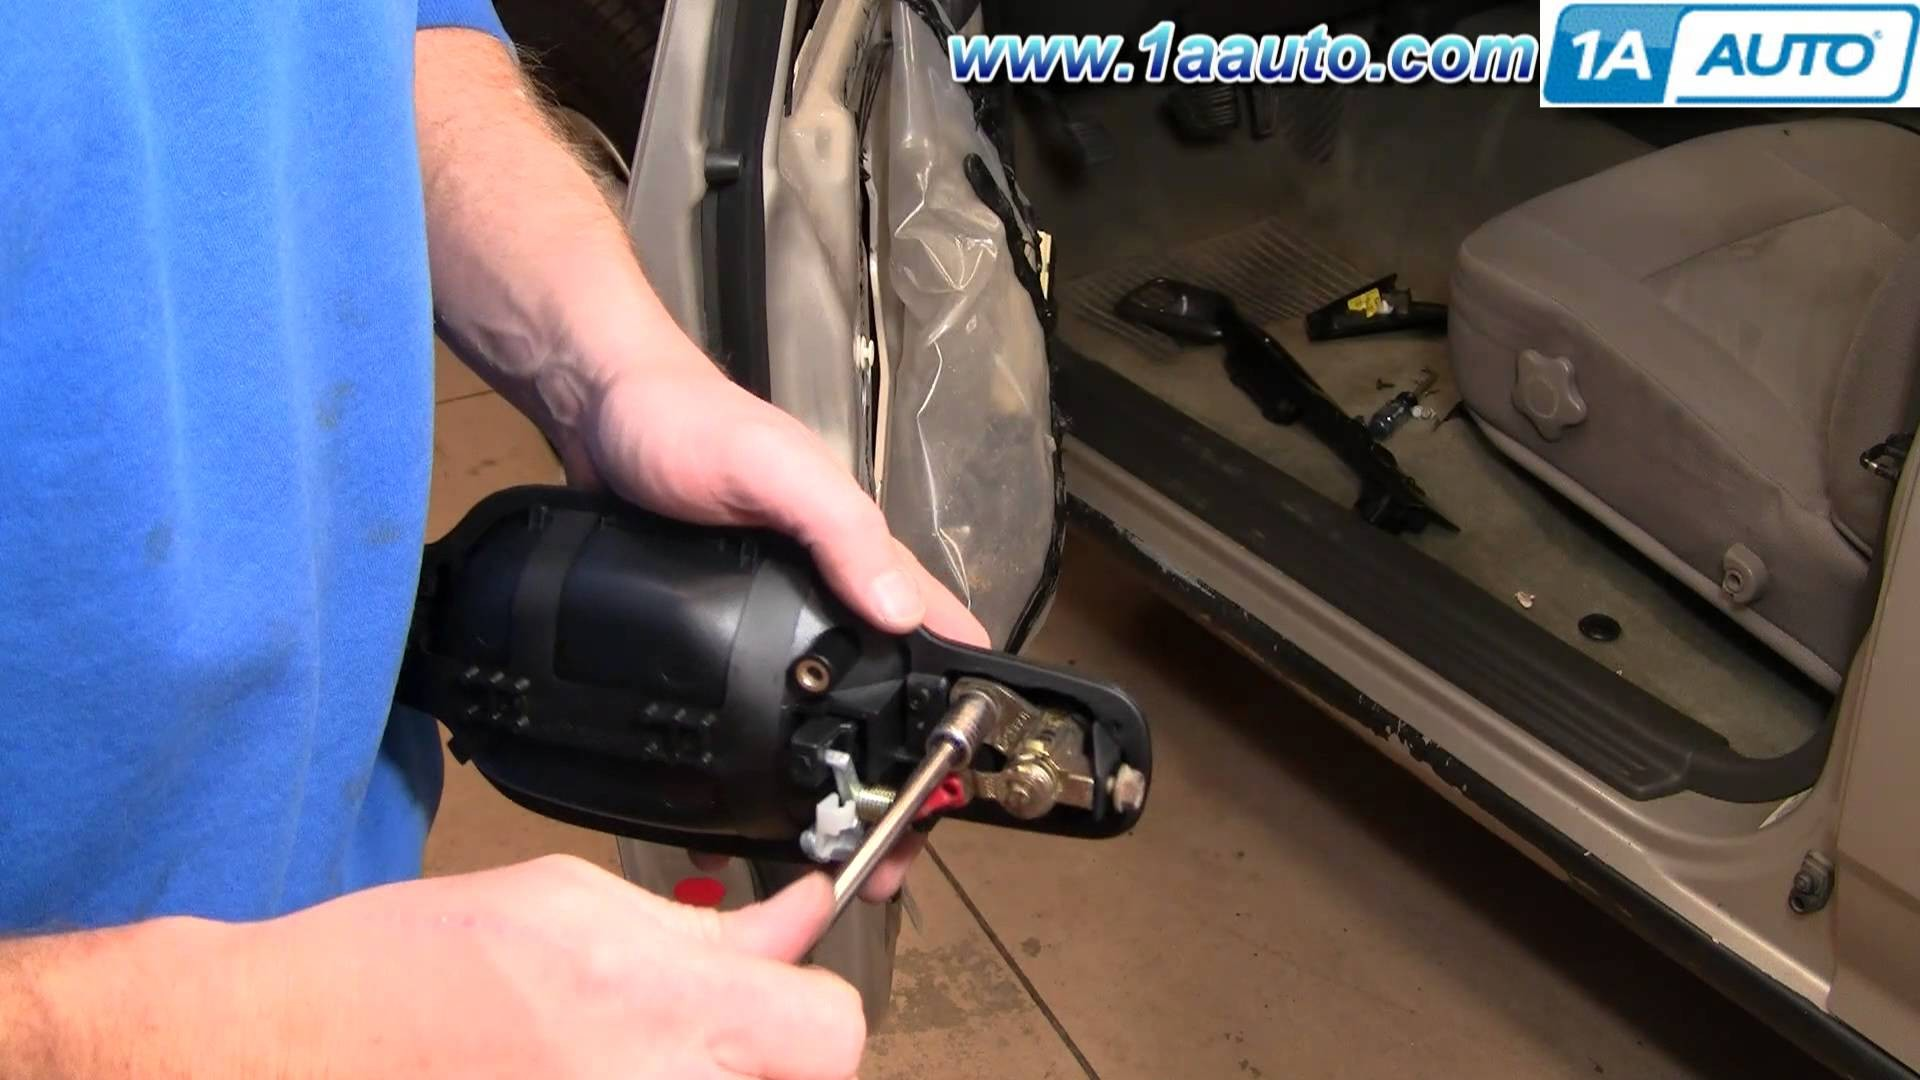 2004 Chevy Colorado Parts Diagram How to Install Replace Front Outside Door Handle Chevy Colorado 04 Of 2004 Chevy Colorado Parts Diagram